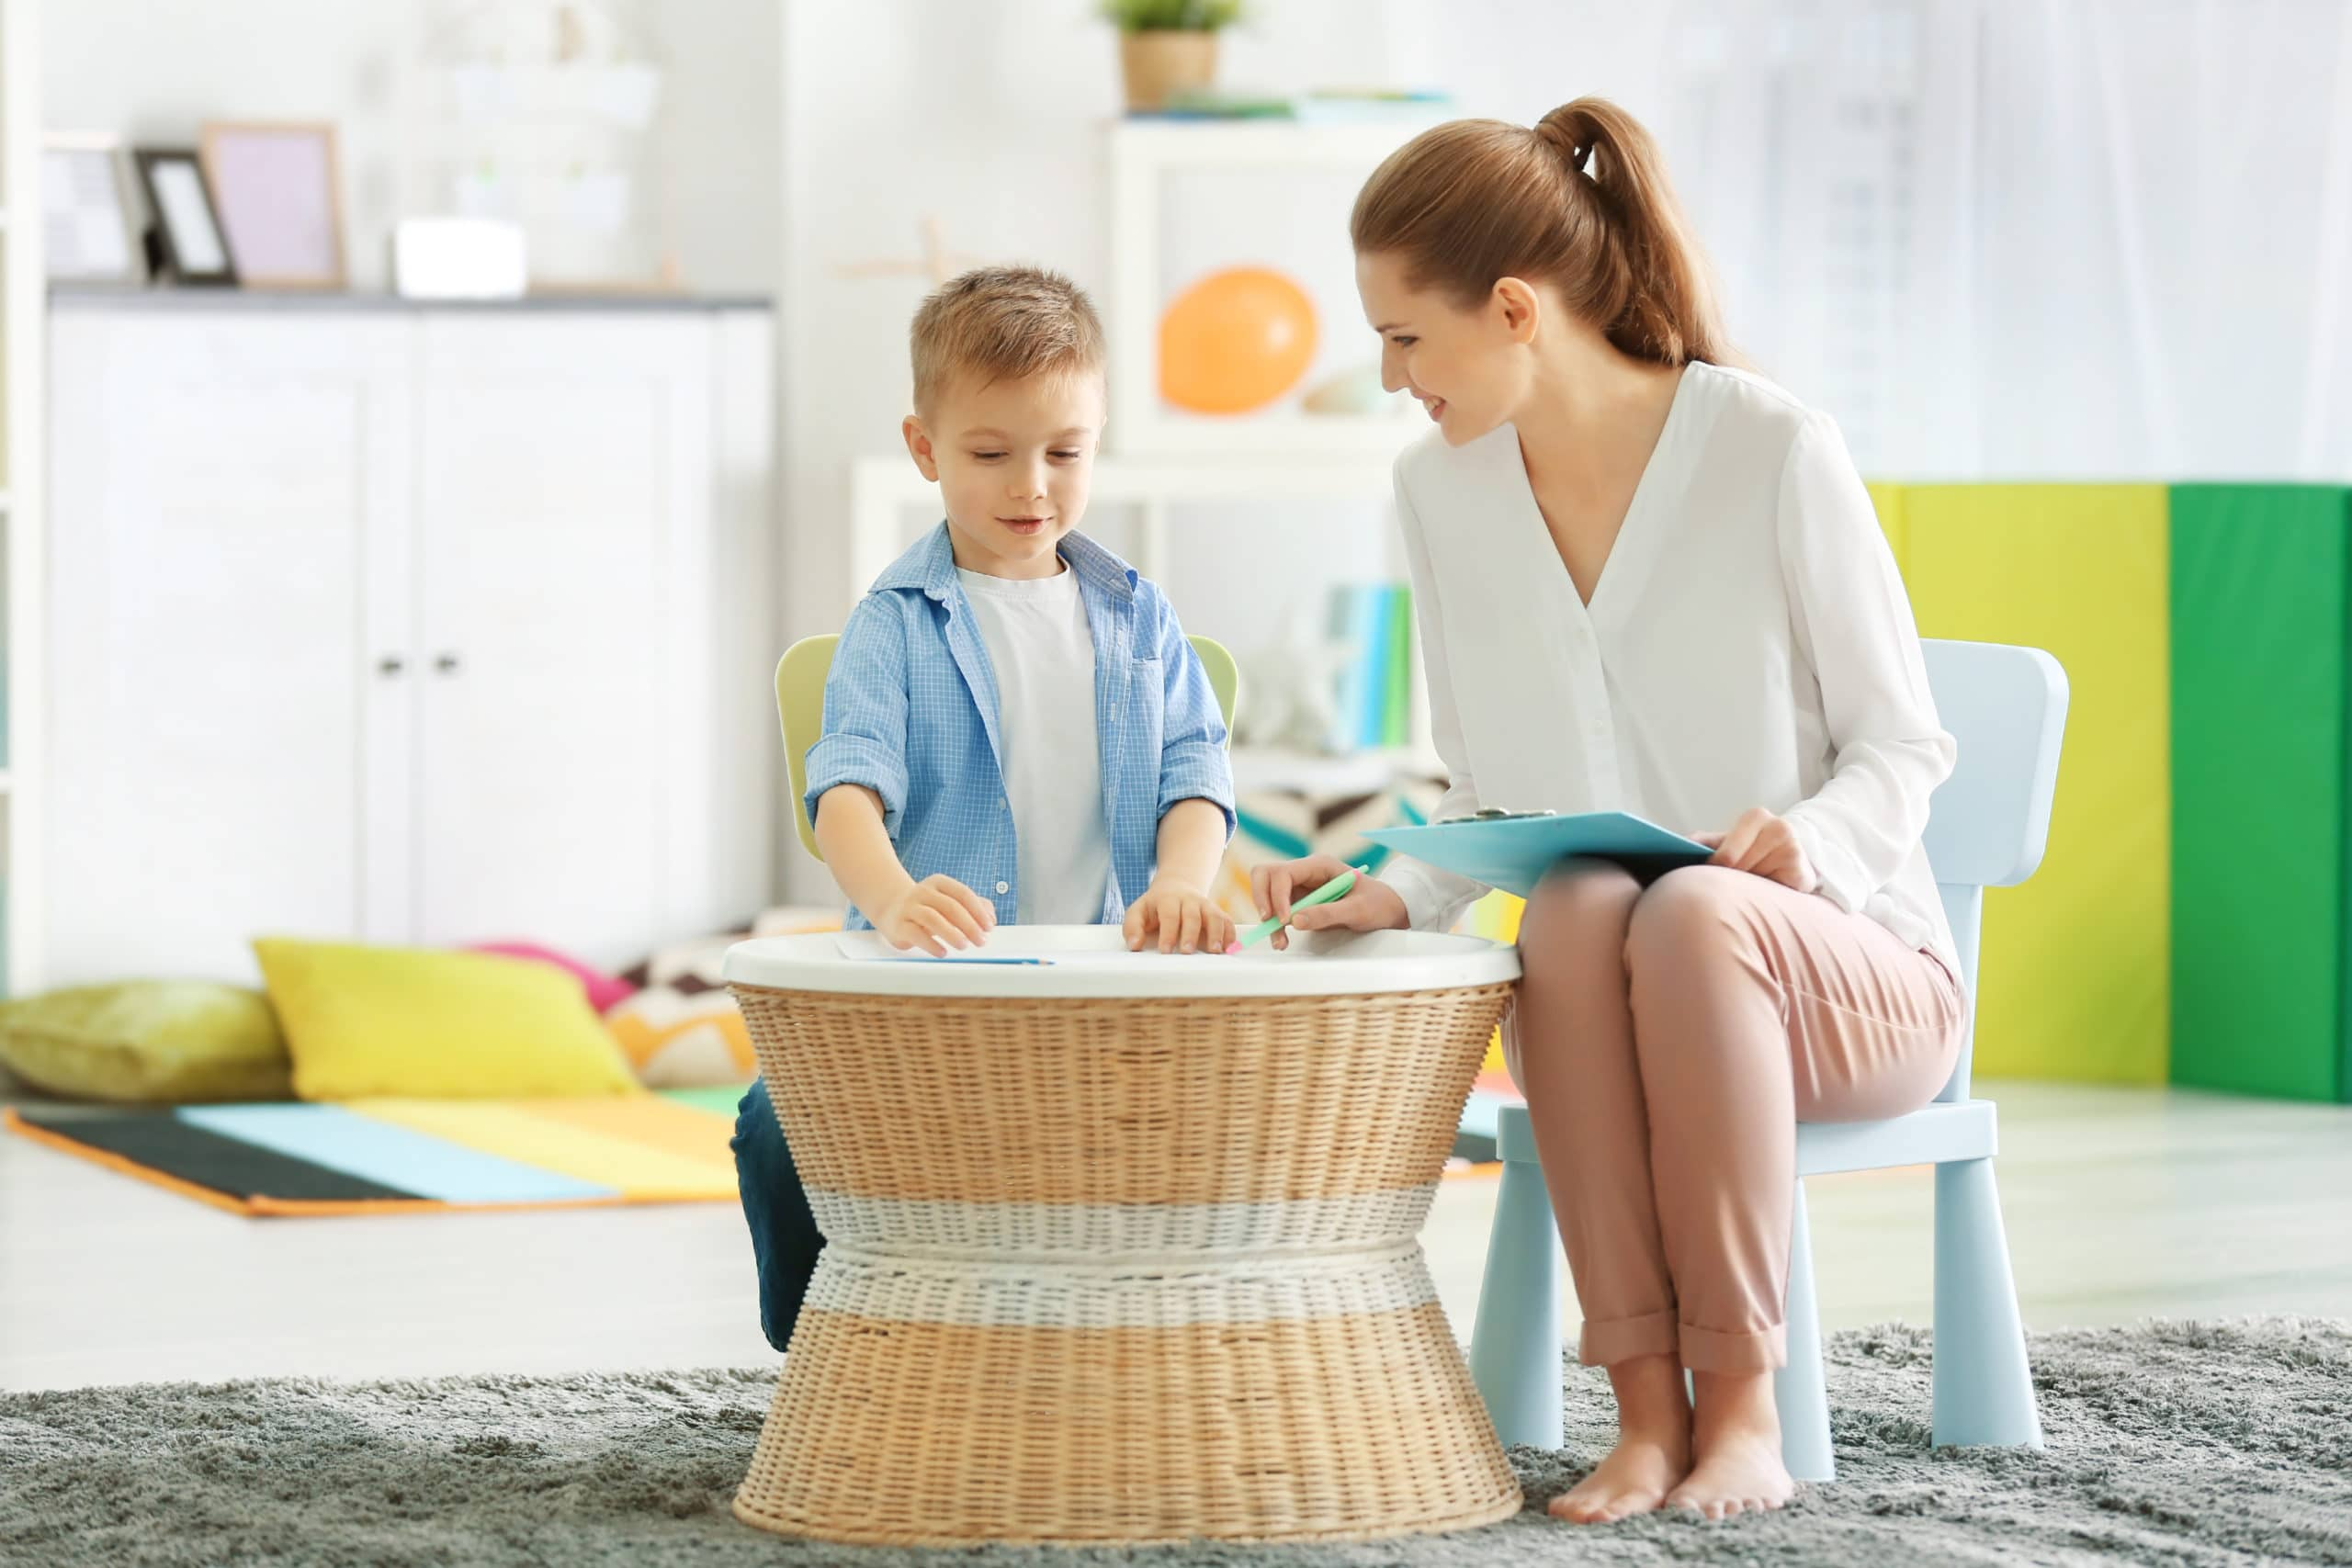 therapy play child quiet working majors popular youth behavior tips most college health mental behavioral dynamics personal services care